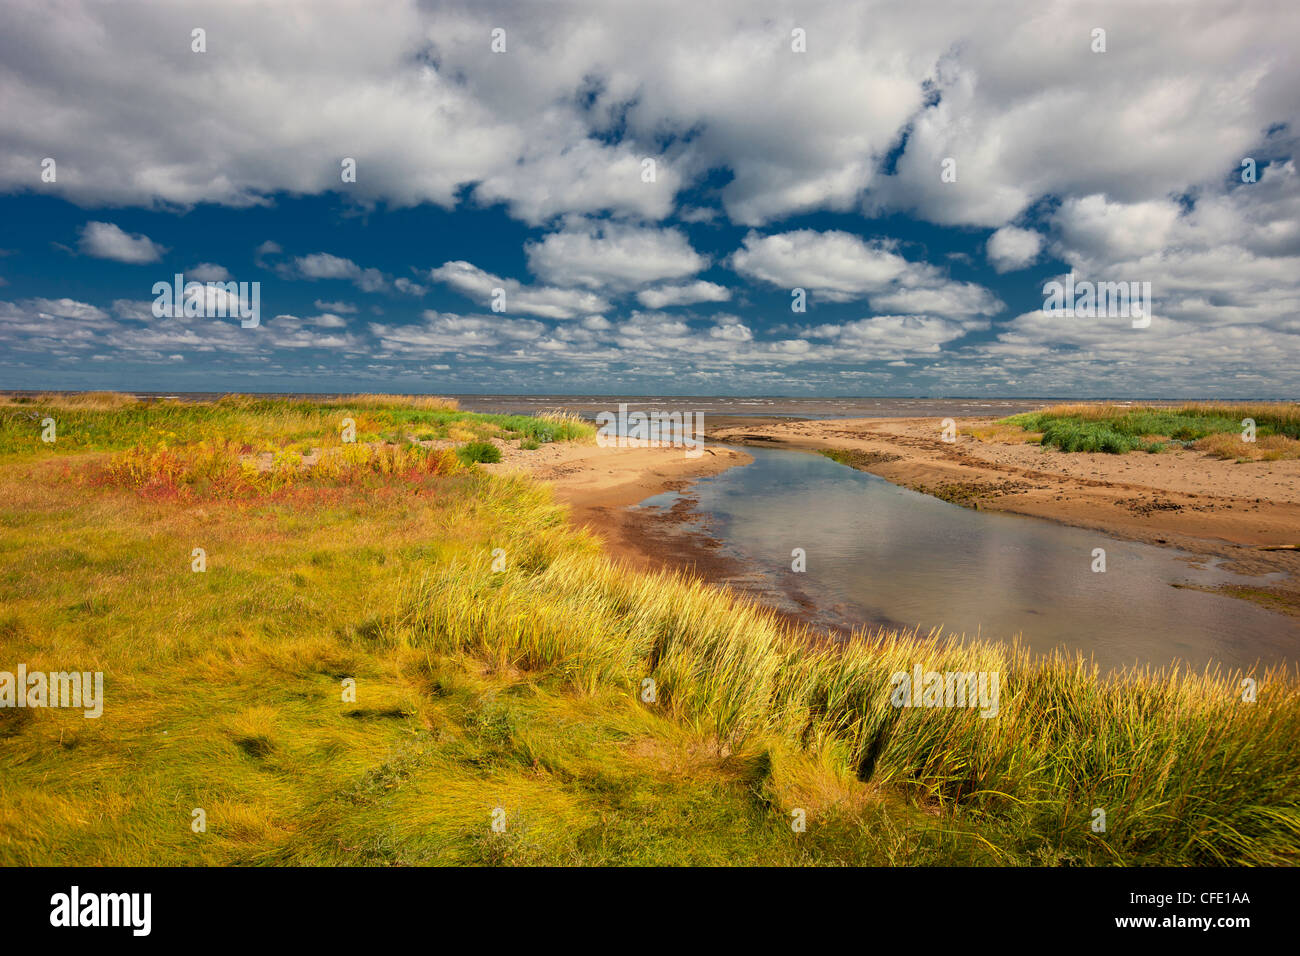 Near Murray Beach, Acadian Coast, New Brunswick, Canada - Stock Image